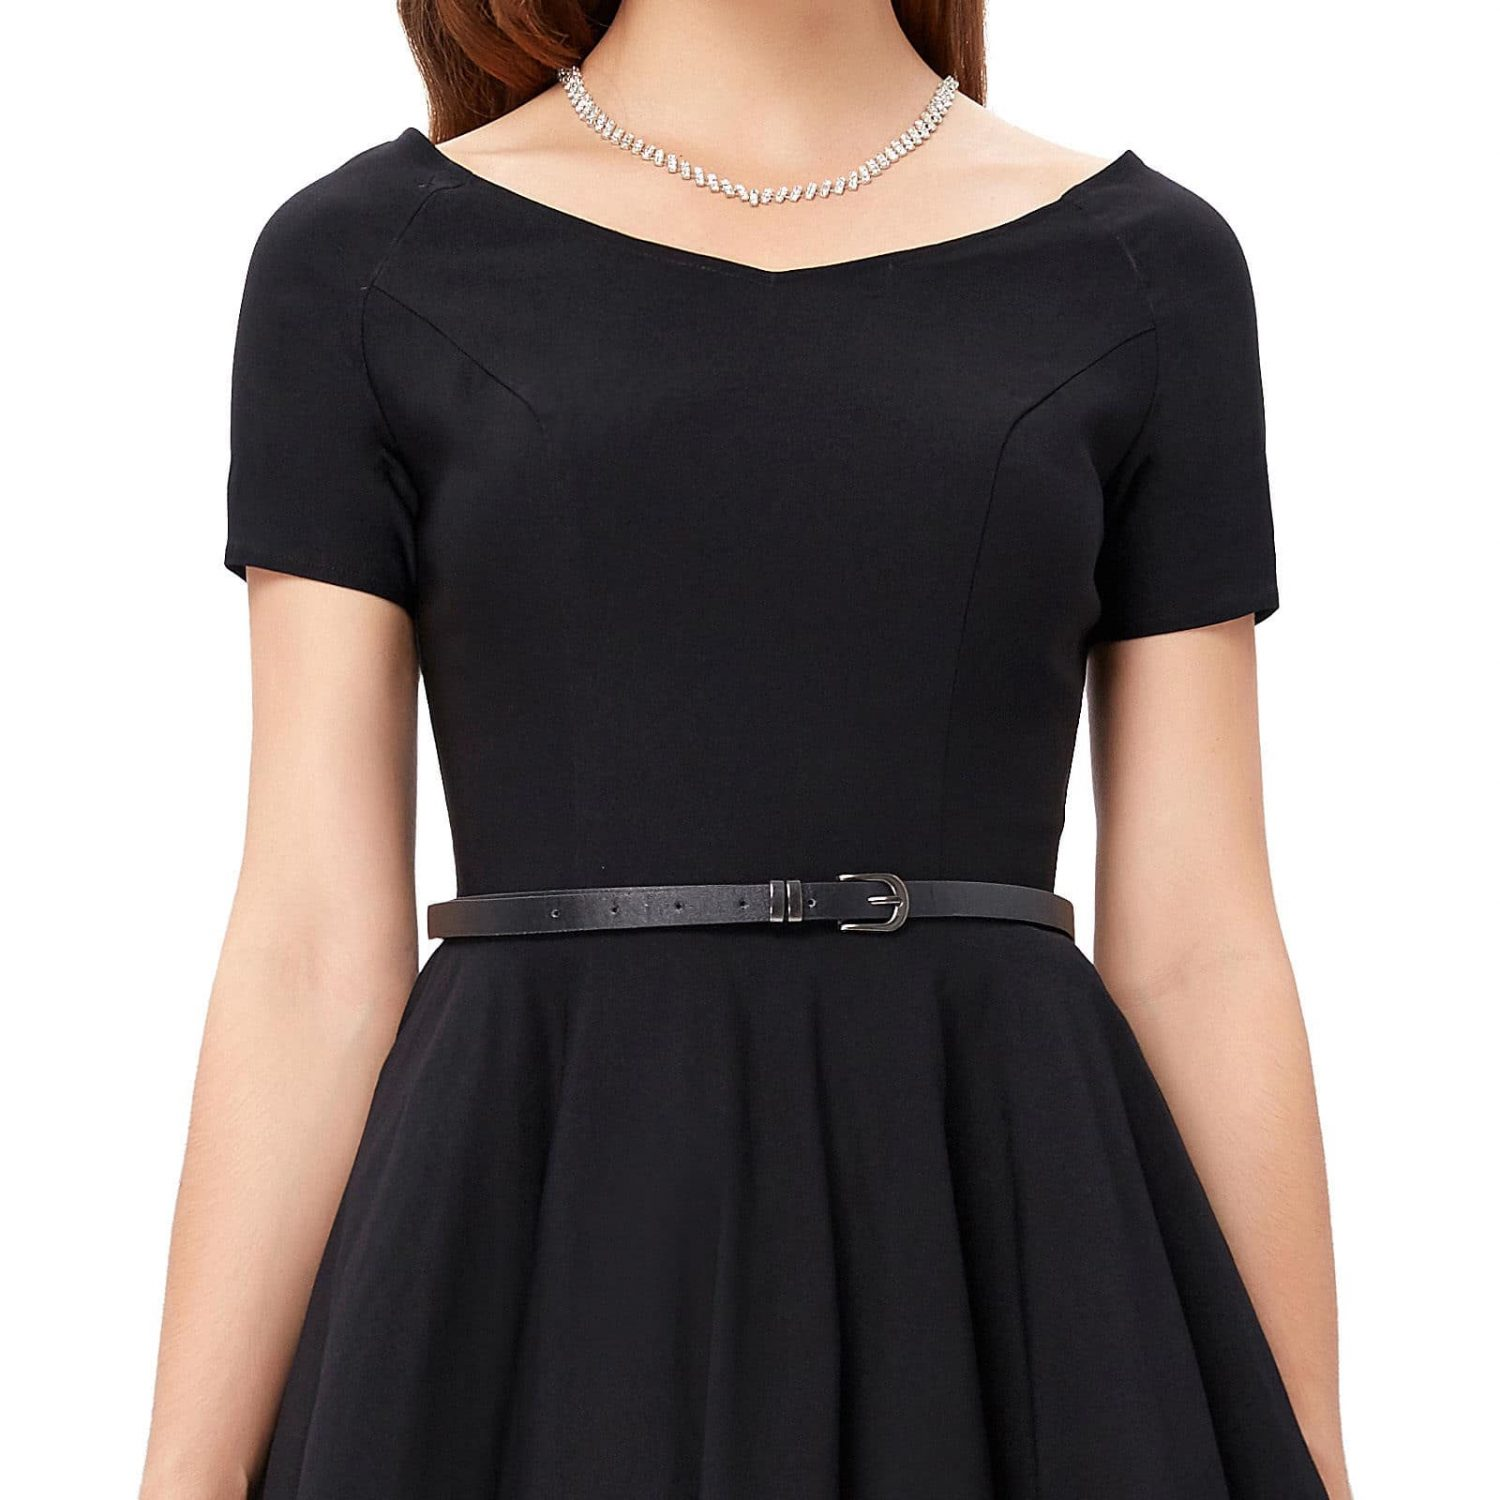 veronica-black-vintage-dress